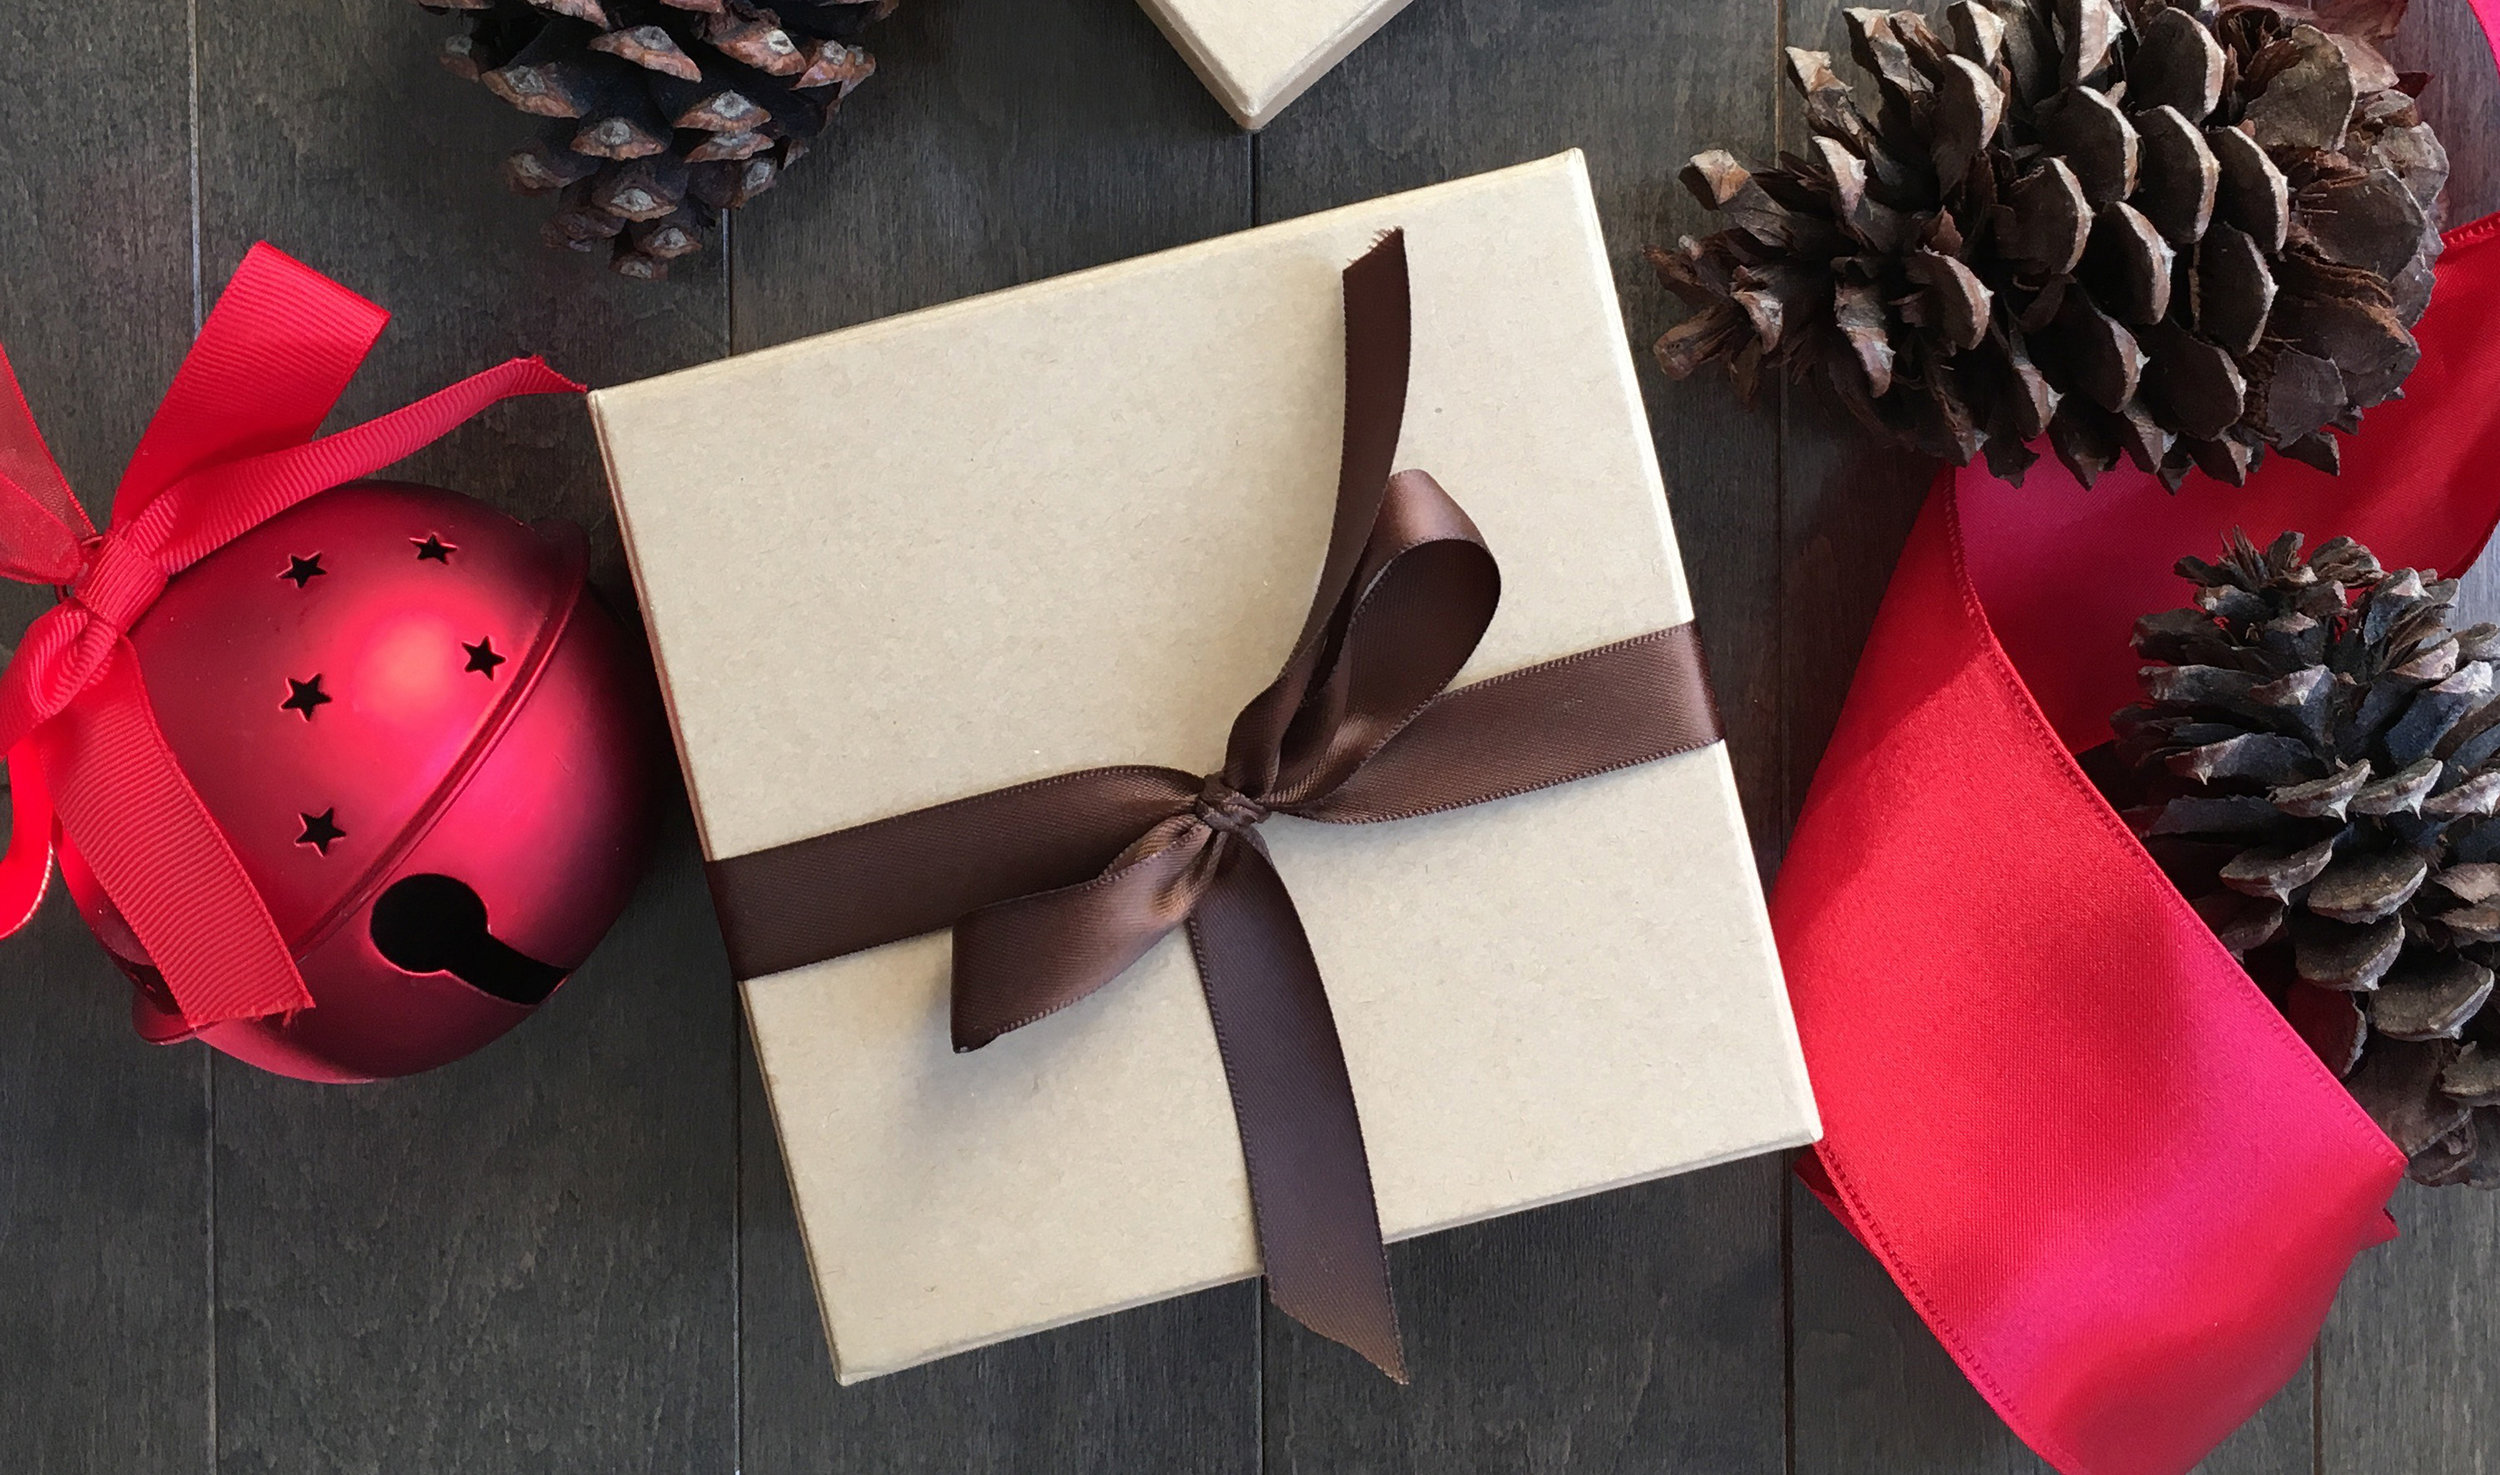 Christmas Portrait Gift Certificate Boxes